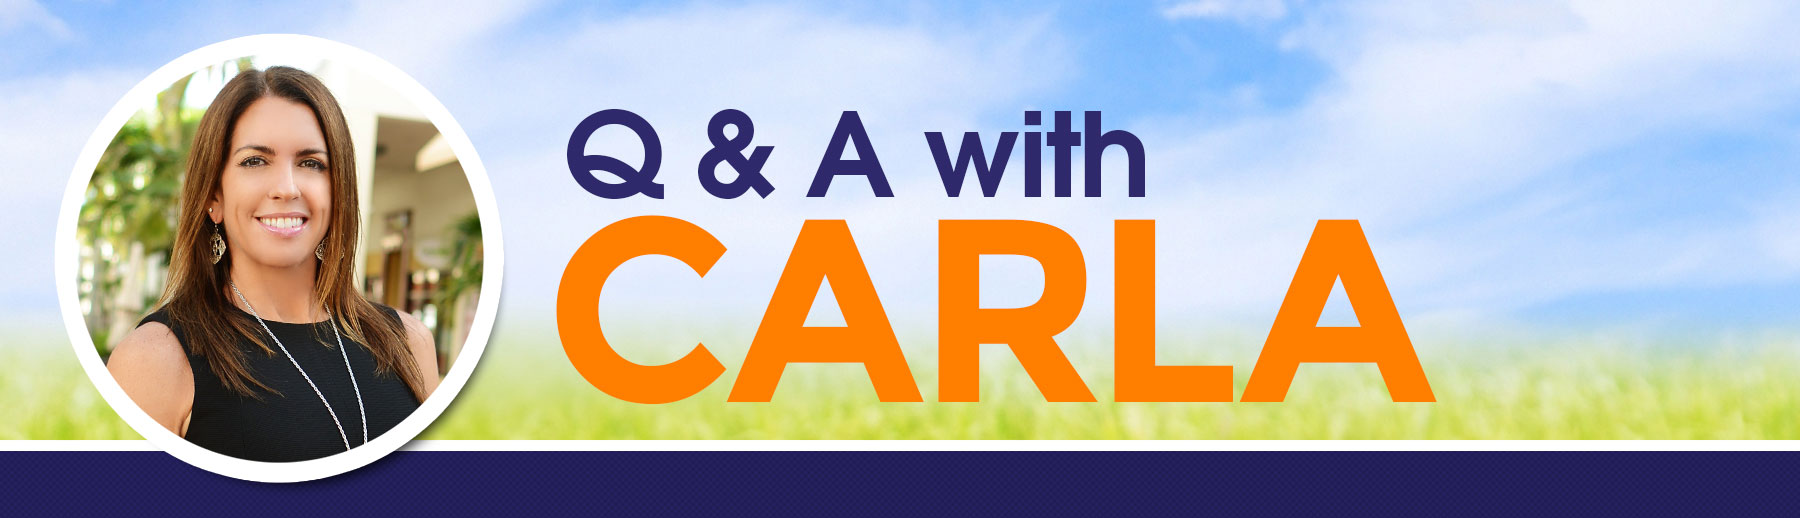 Q & A with Carla